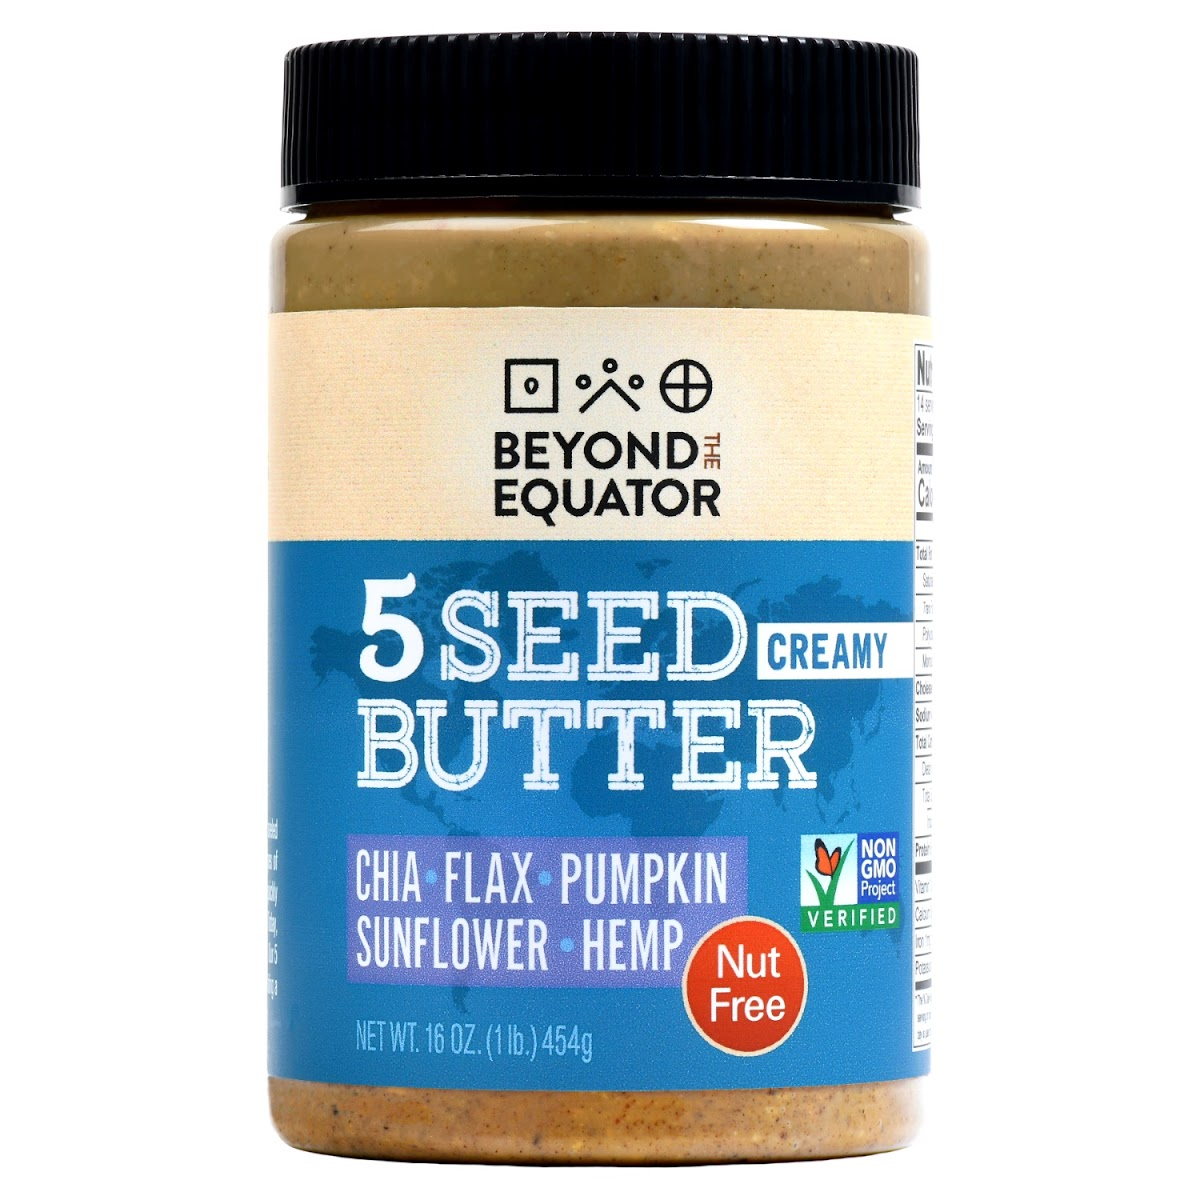 5 Seed Butter - Creamy